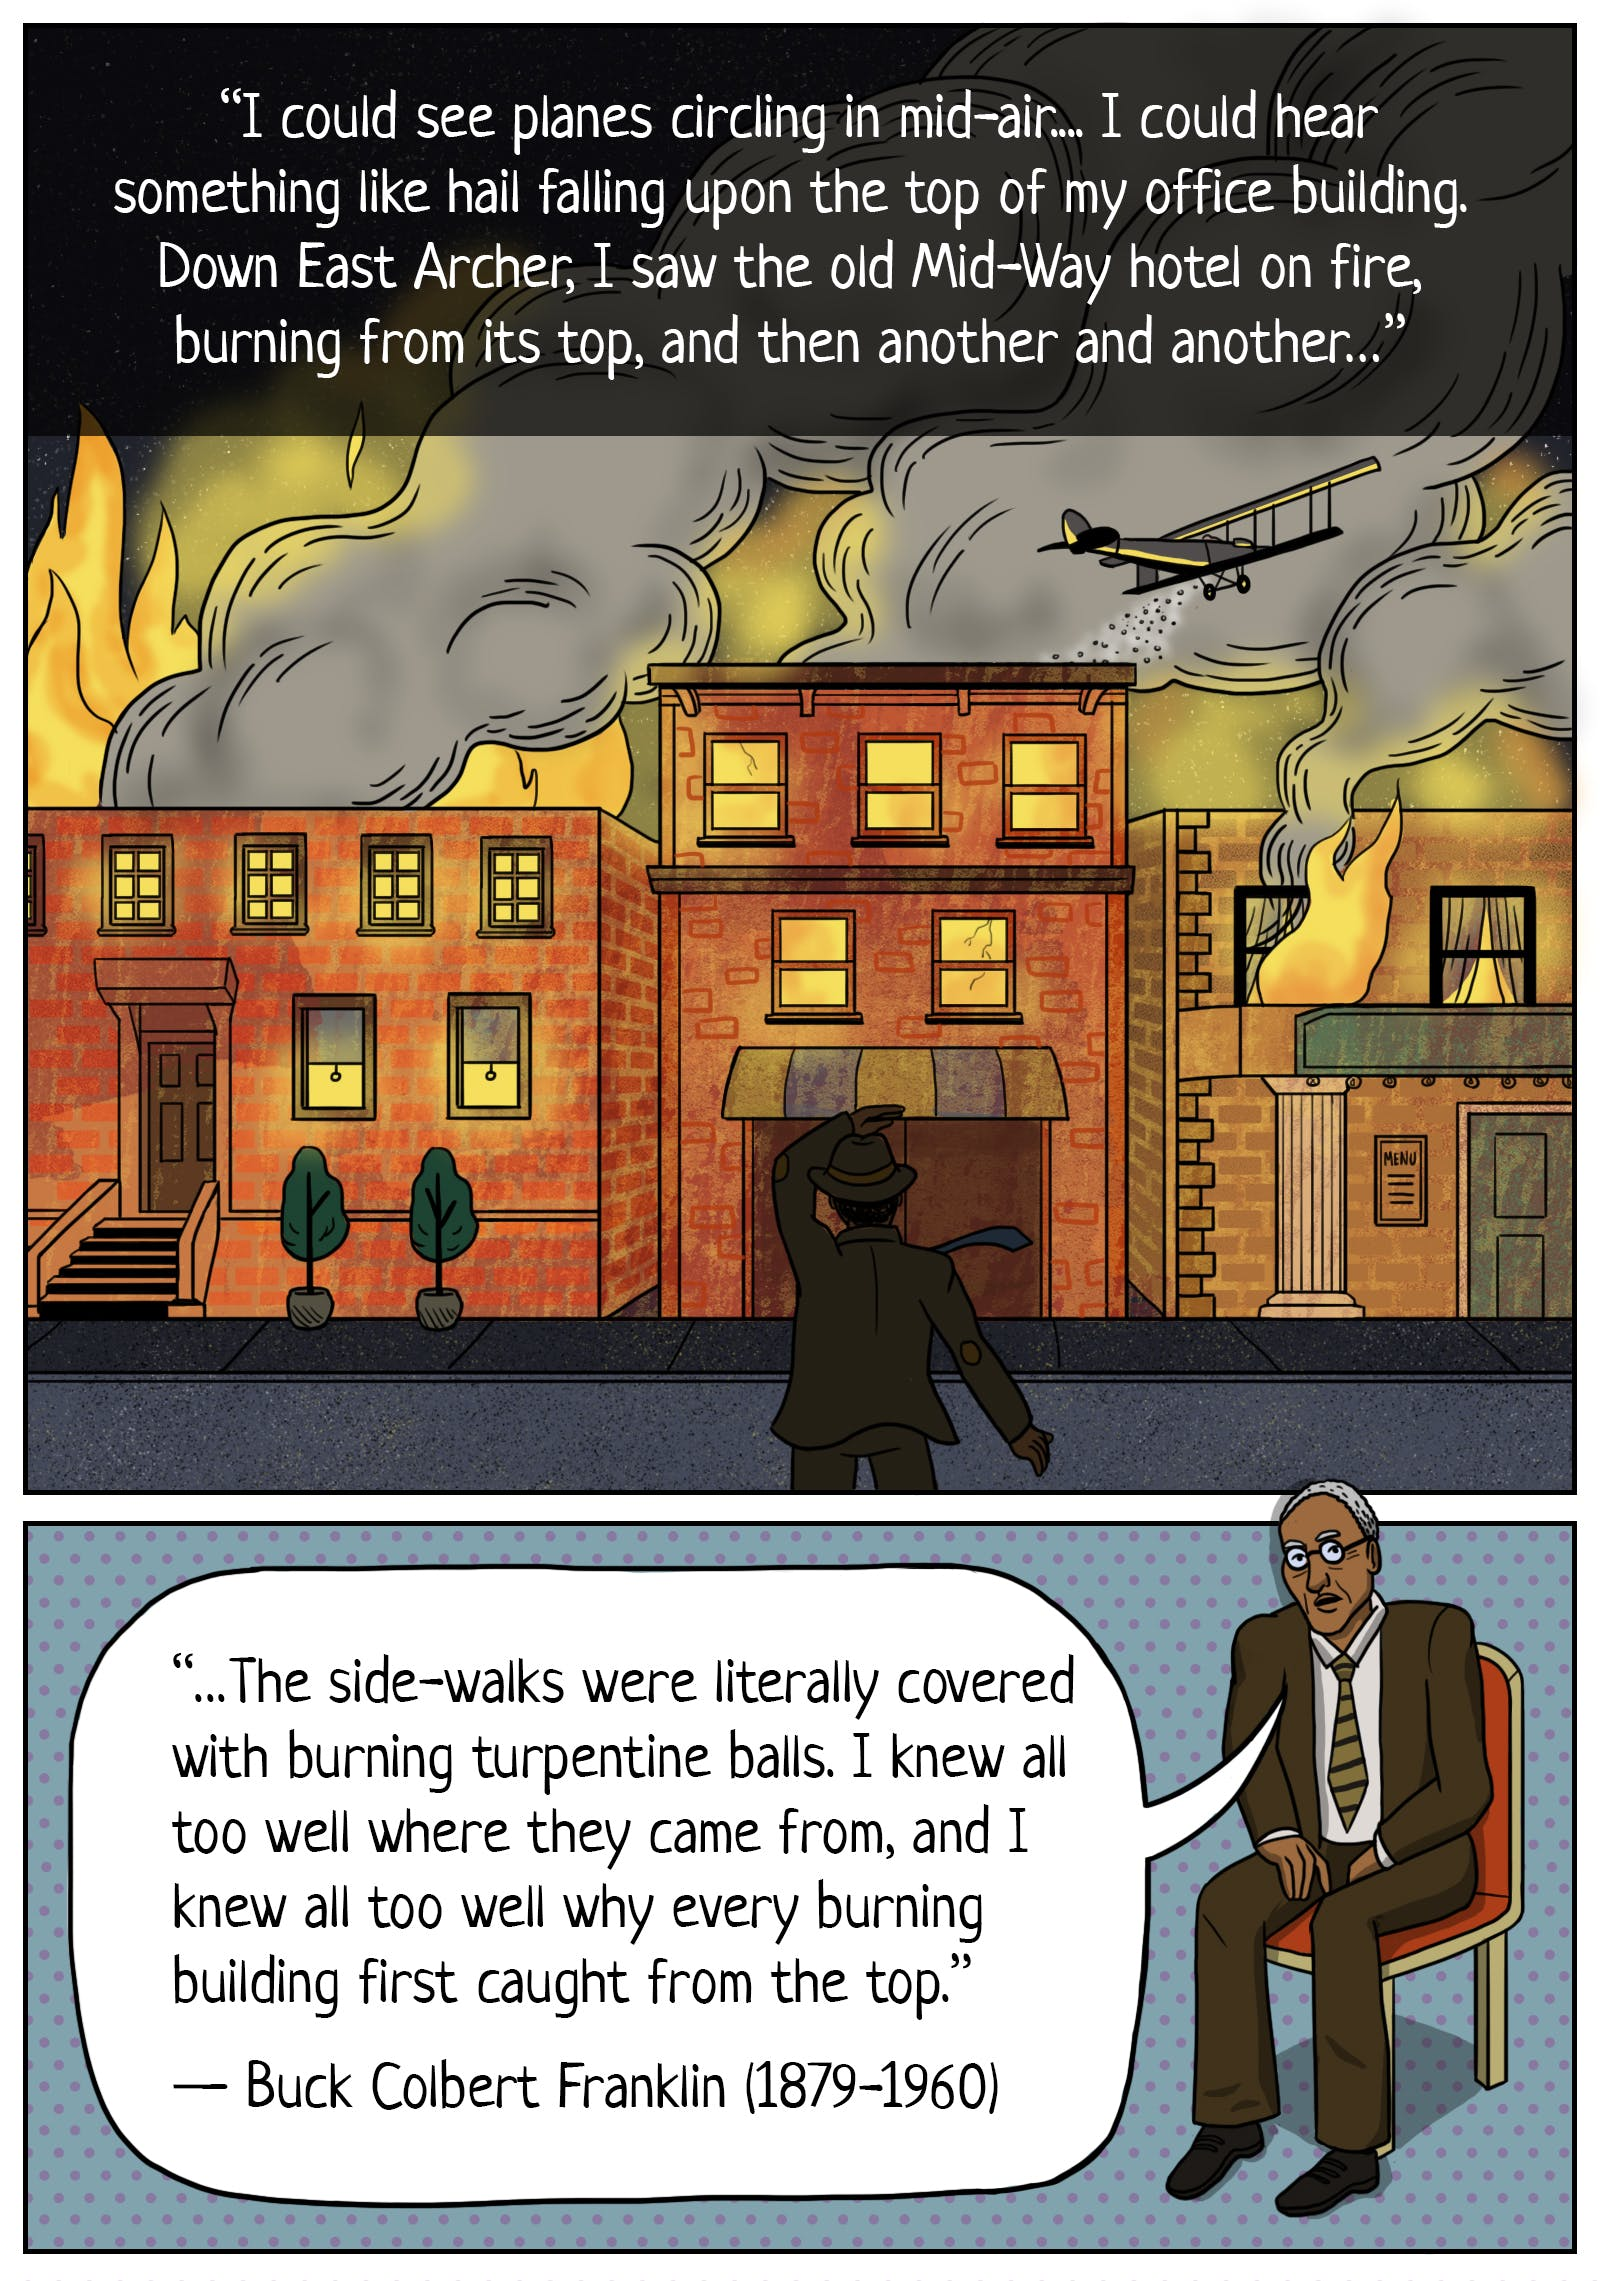 The Destruction of Black Wall Street - read the full piece at The Nib